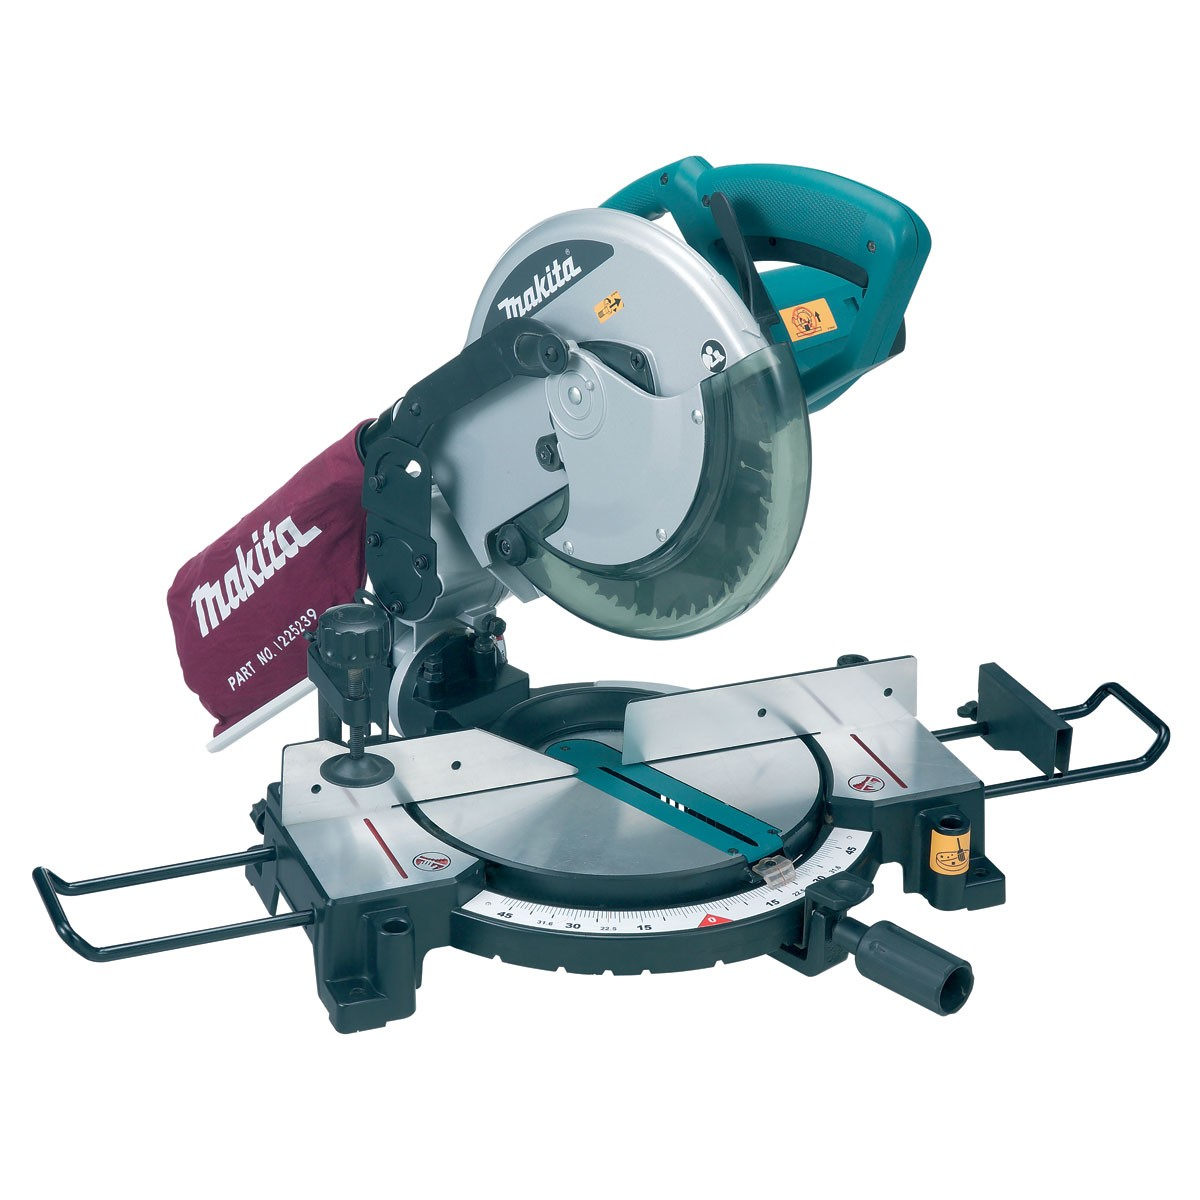 Makita MLS100 255mm Compound Mitre Saw